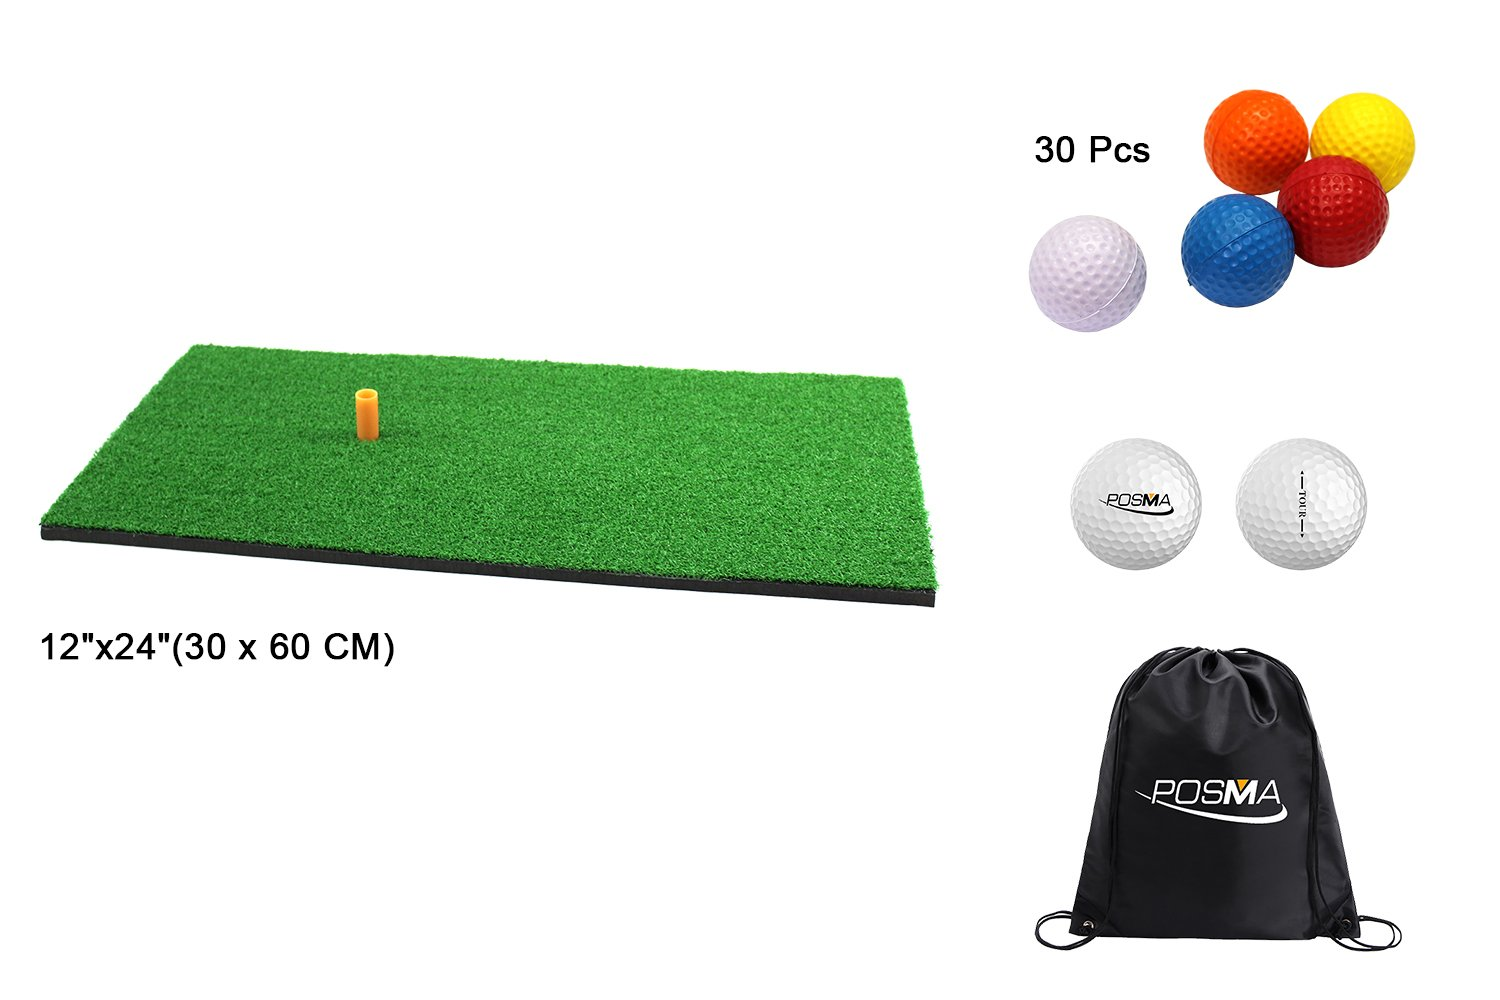 POSMA HM040AA Golf Backyard Golf Mat 12''x24''(30 x 60 CM), 30pcs Multi Color PU Practice Balls, 2pcs Tour Ball, and Cinch Sack Carry Bag